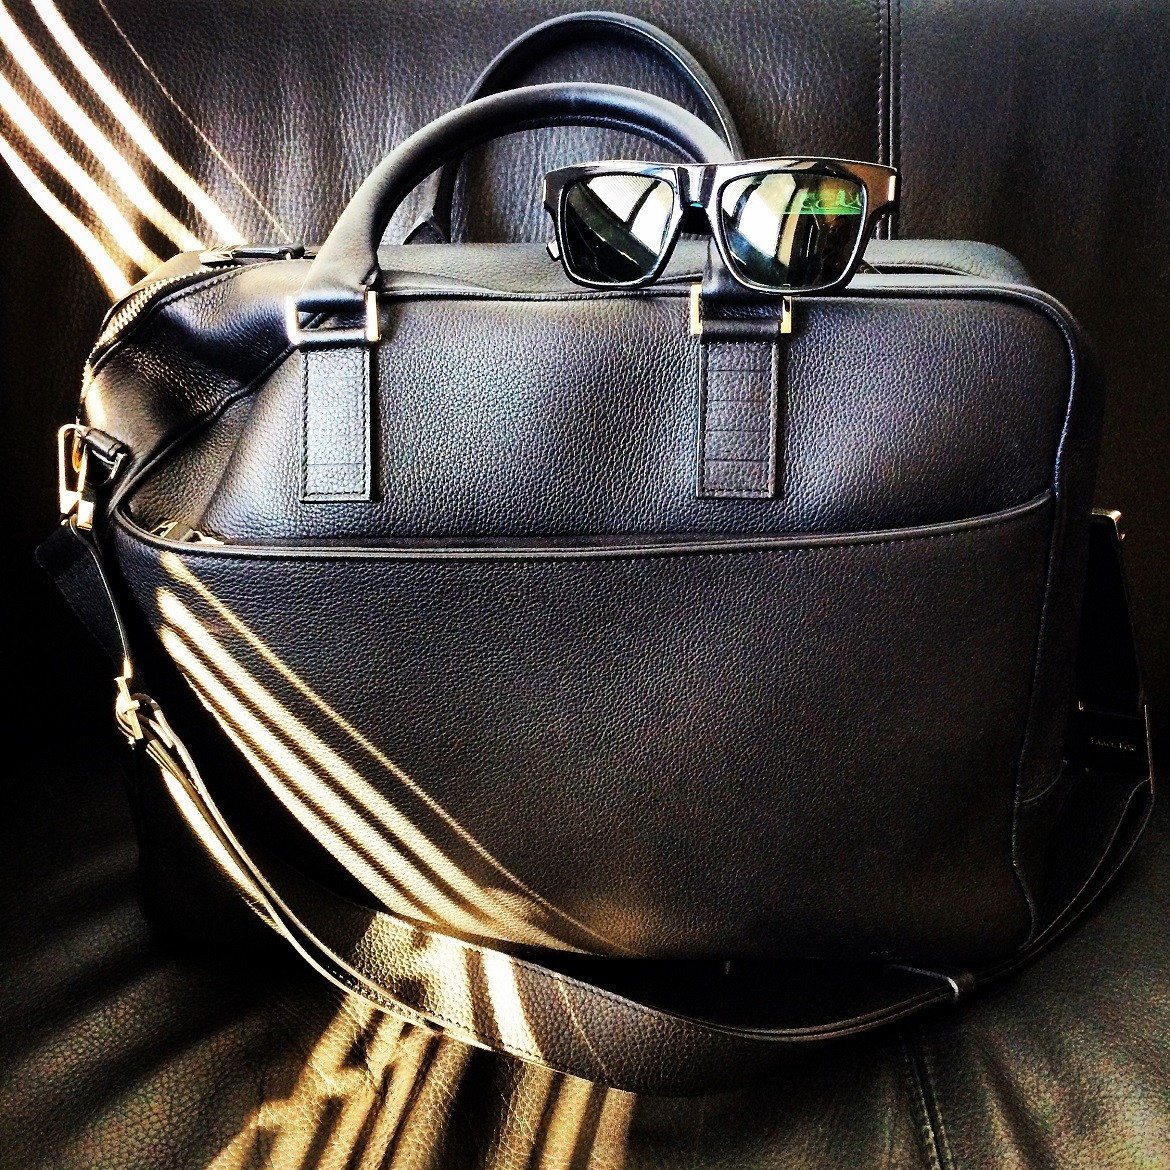 Leather on leather, black on black - Briefcase by DIOR HOMME. Sunglasses by SAINT LAURENT by Hedi Slimane.